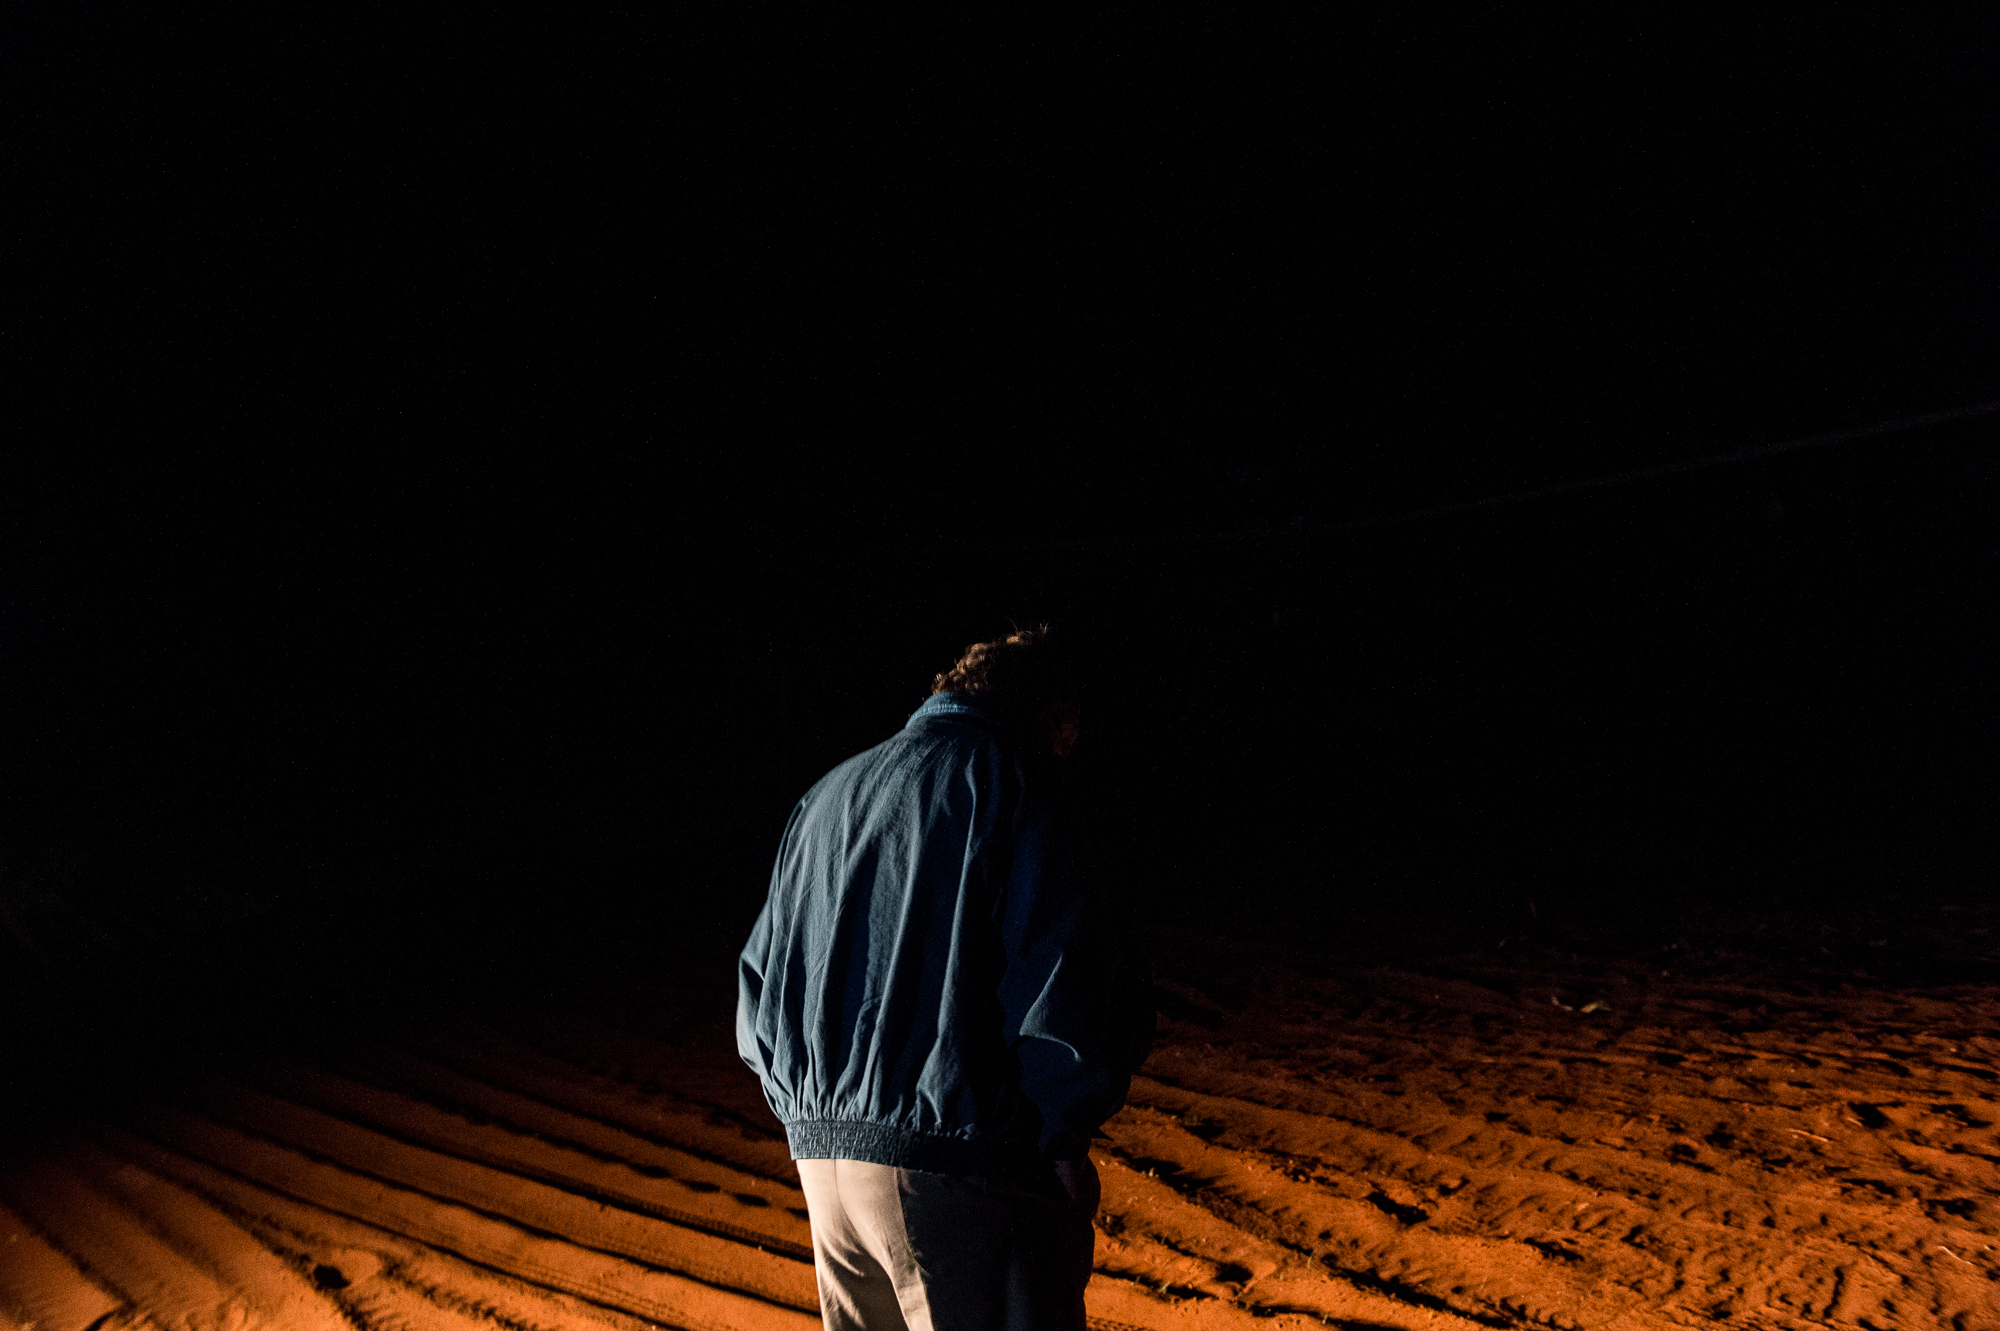 South Africa, Northern Cape, 03.08.2018 // Willem, a farmer in the Karoo Desert, living next to Orania, Northern Cape. At night he is turning on the irrigation for the fields. // Lucas Bäuml